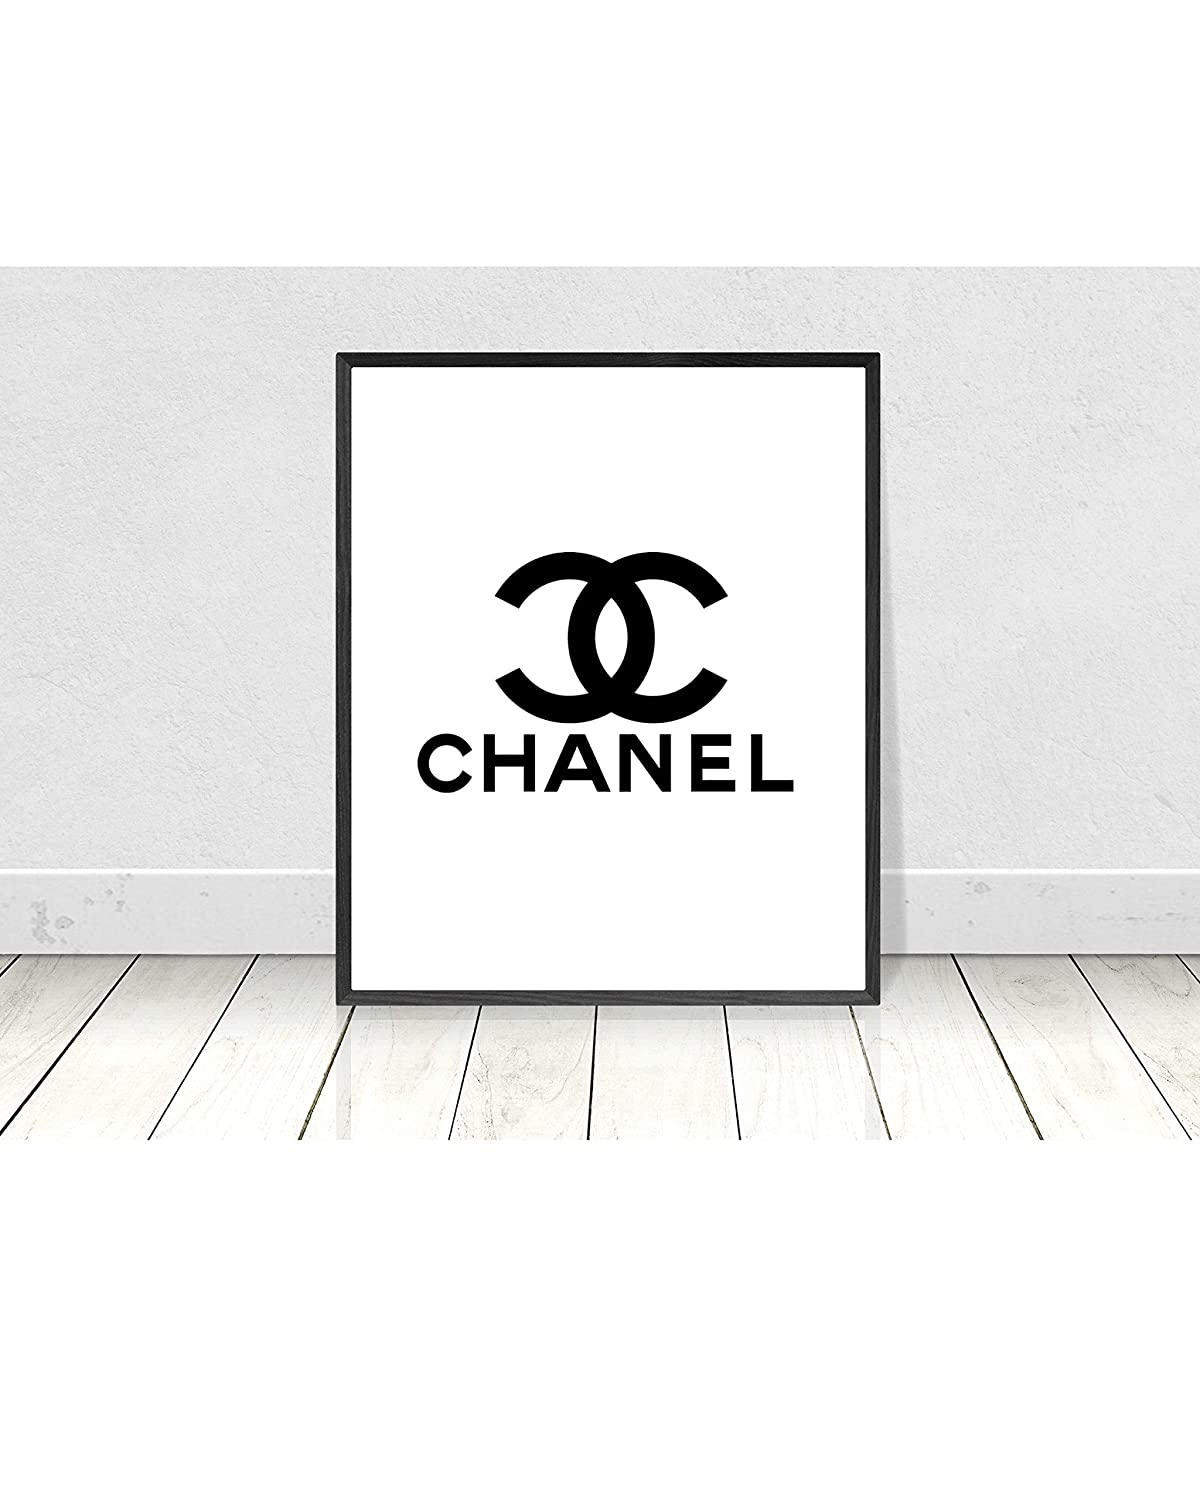 picture about Chanel Printable called : King65irginia Chanel Print Chanel Poster Chanel